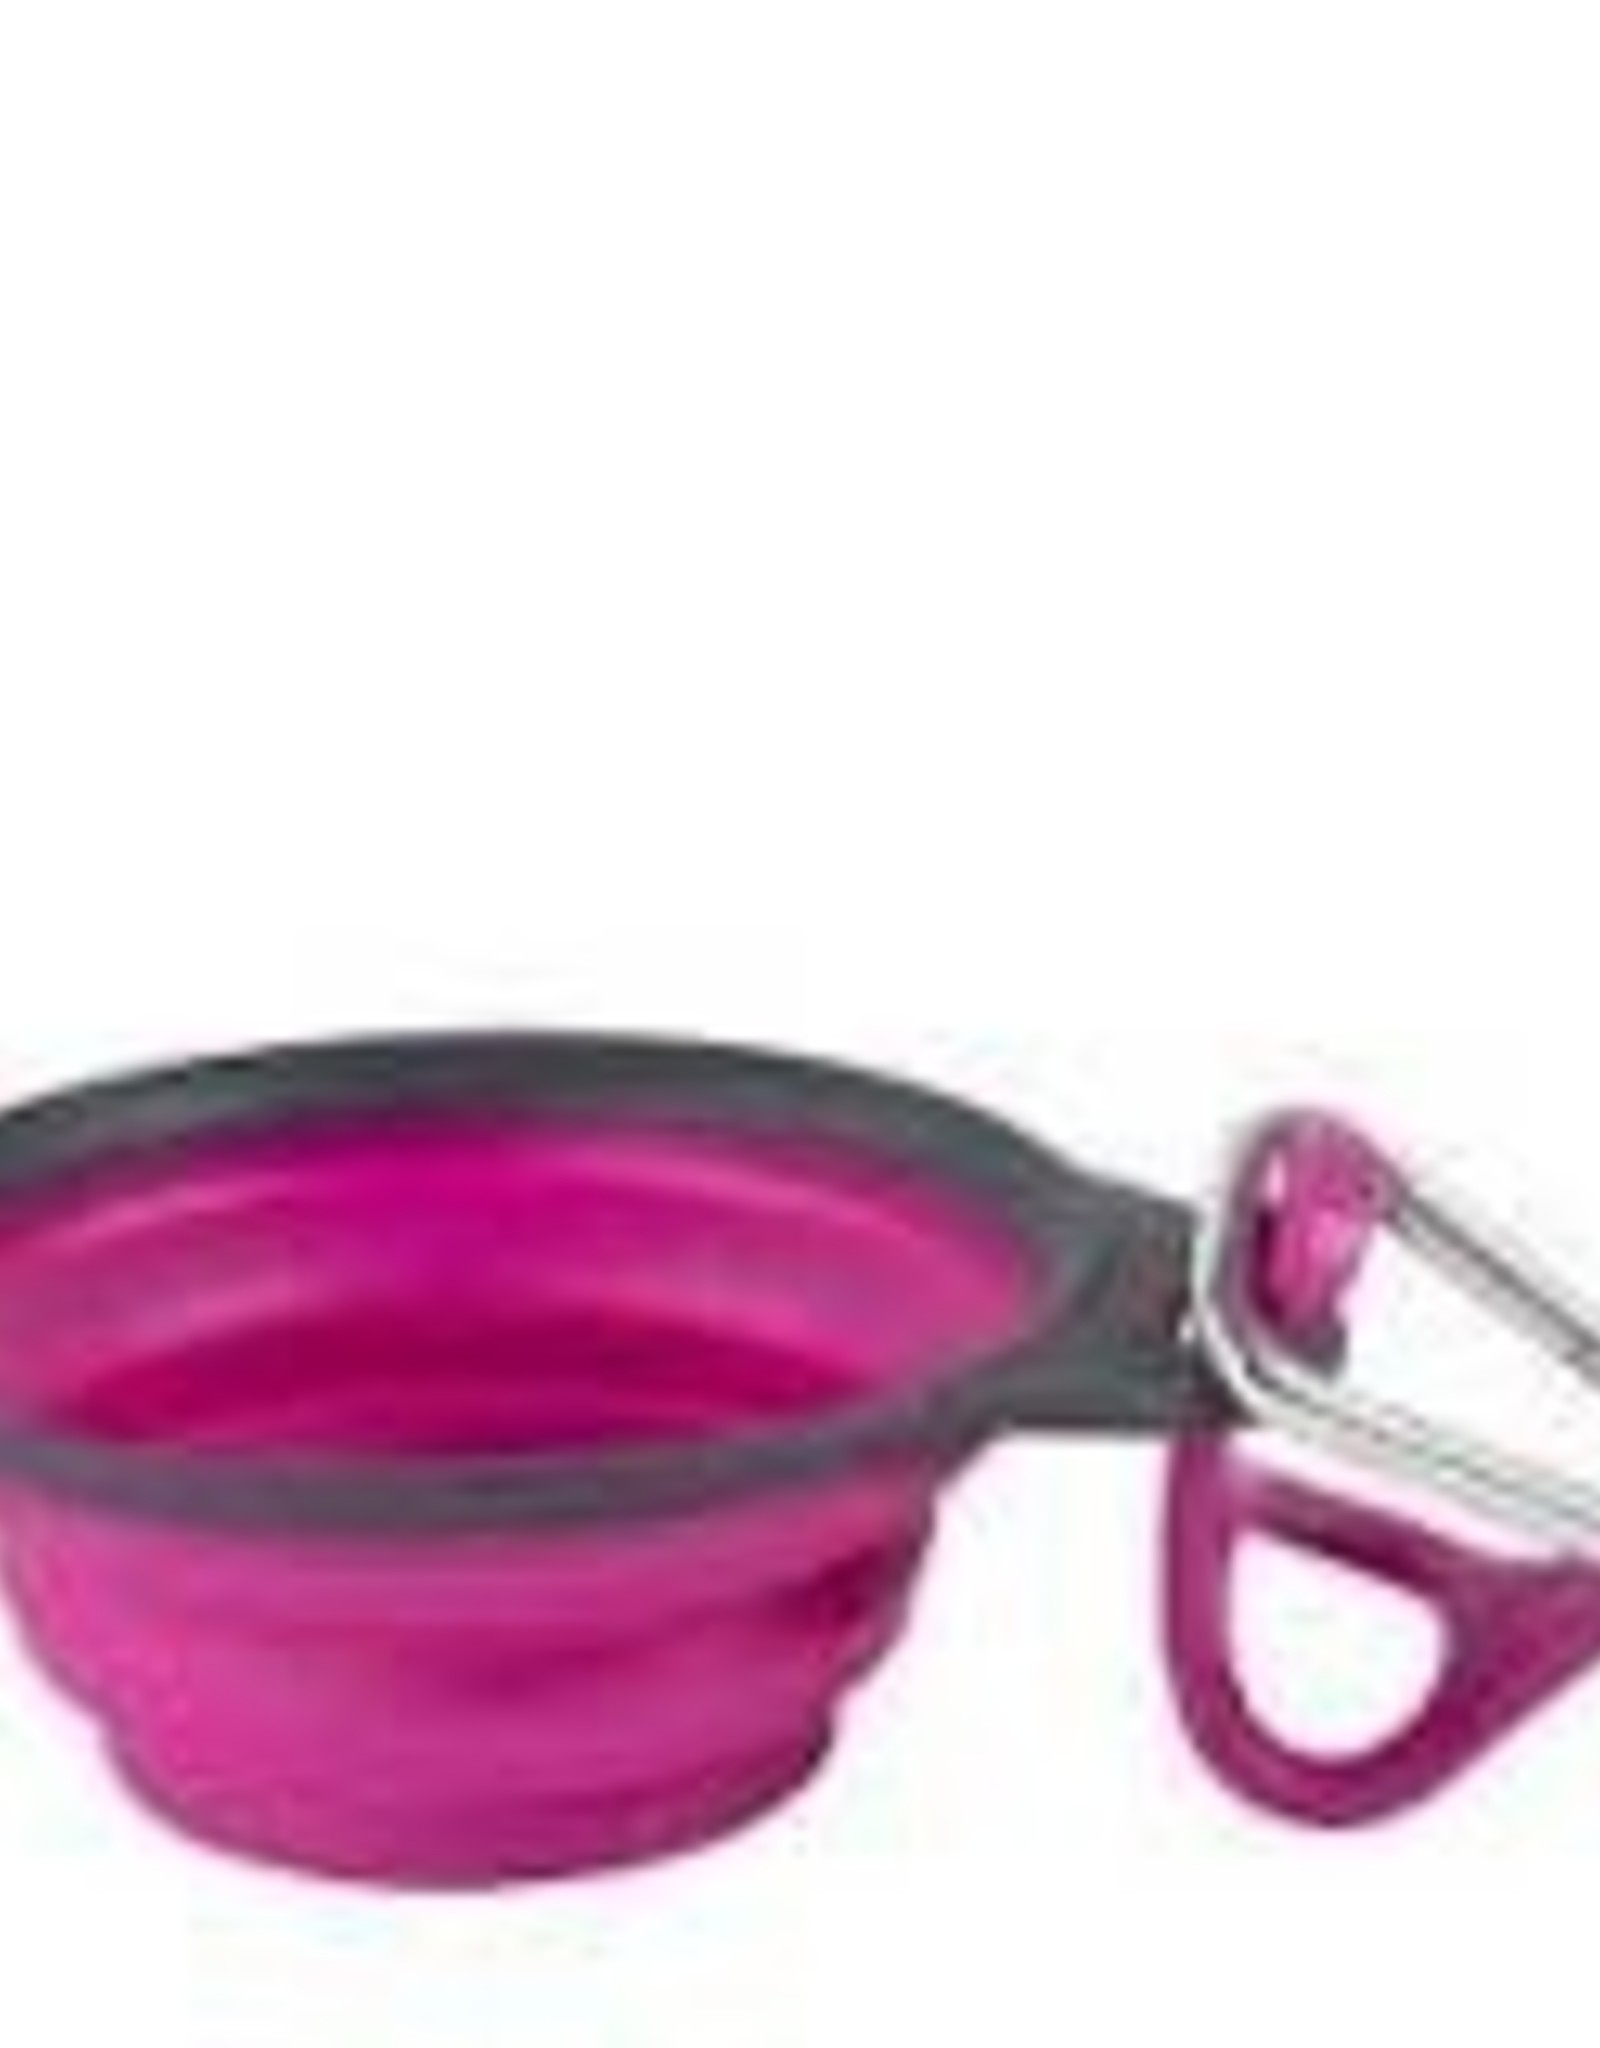 Dexas Dexas Collapsibe Travel  Cup Fuscia 2 Cup